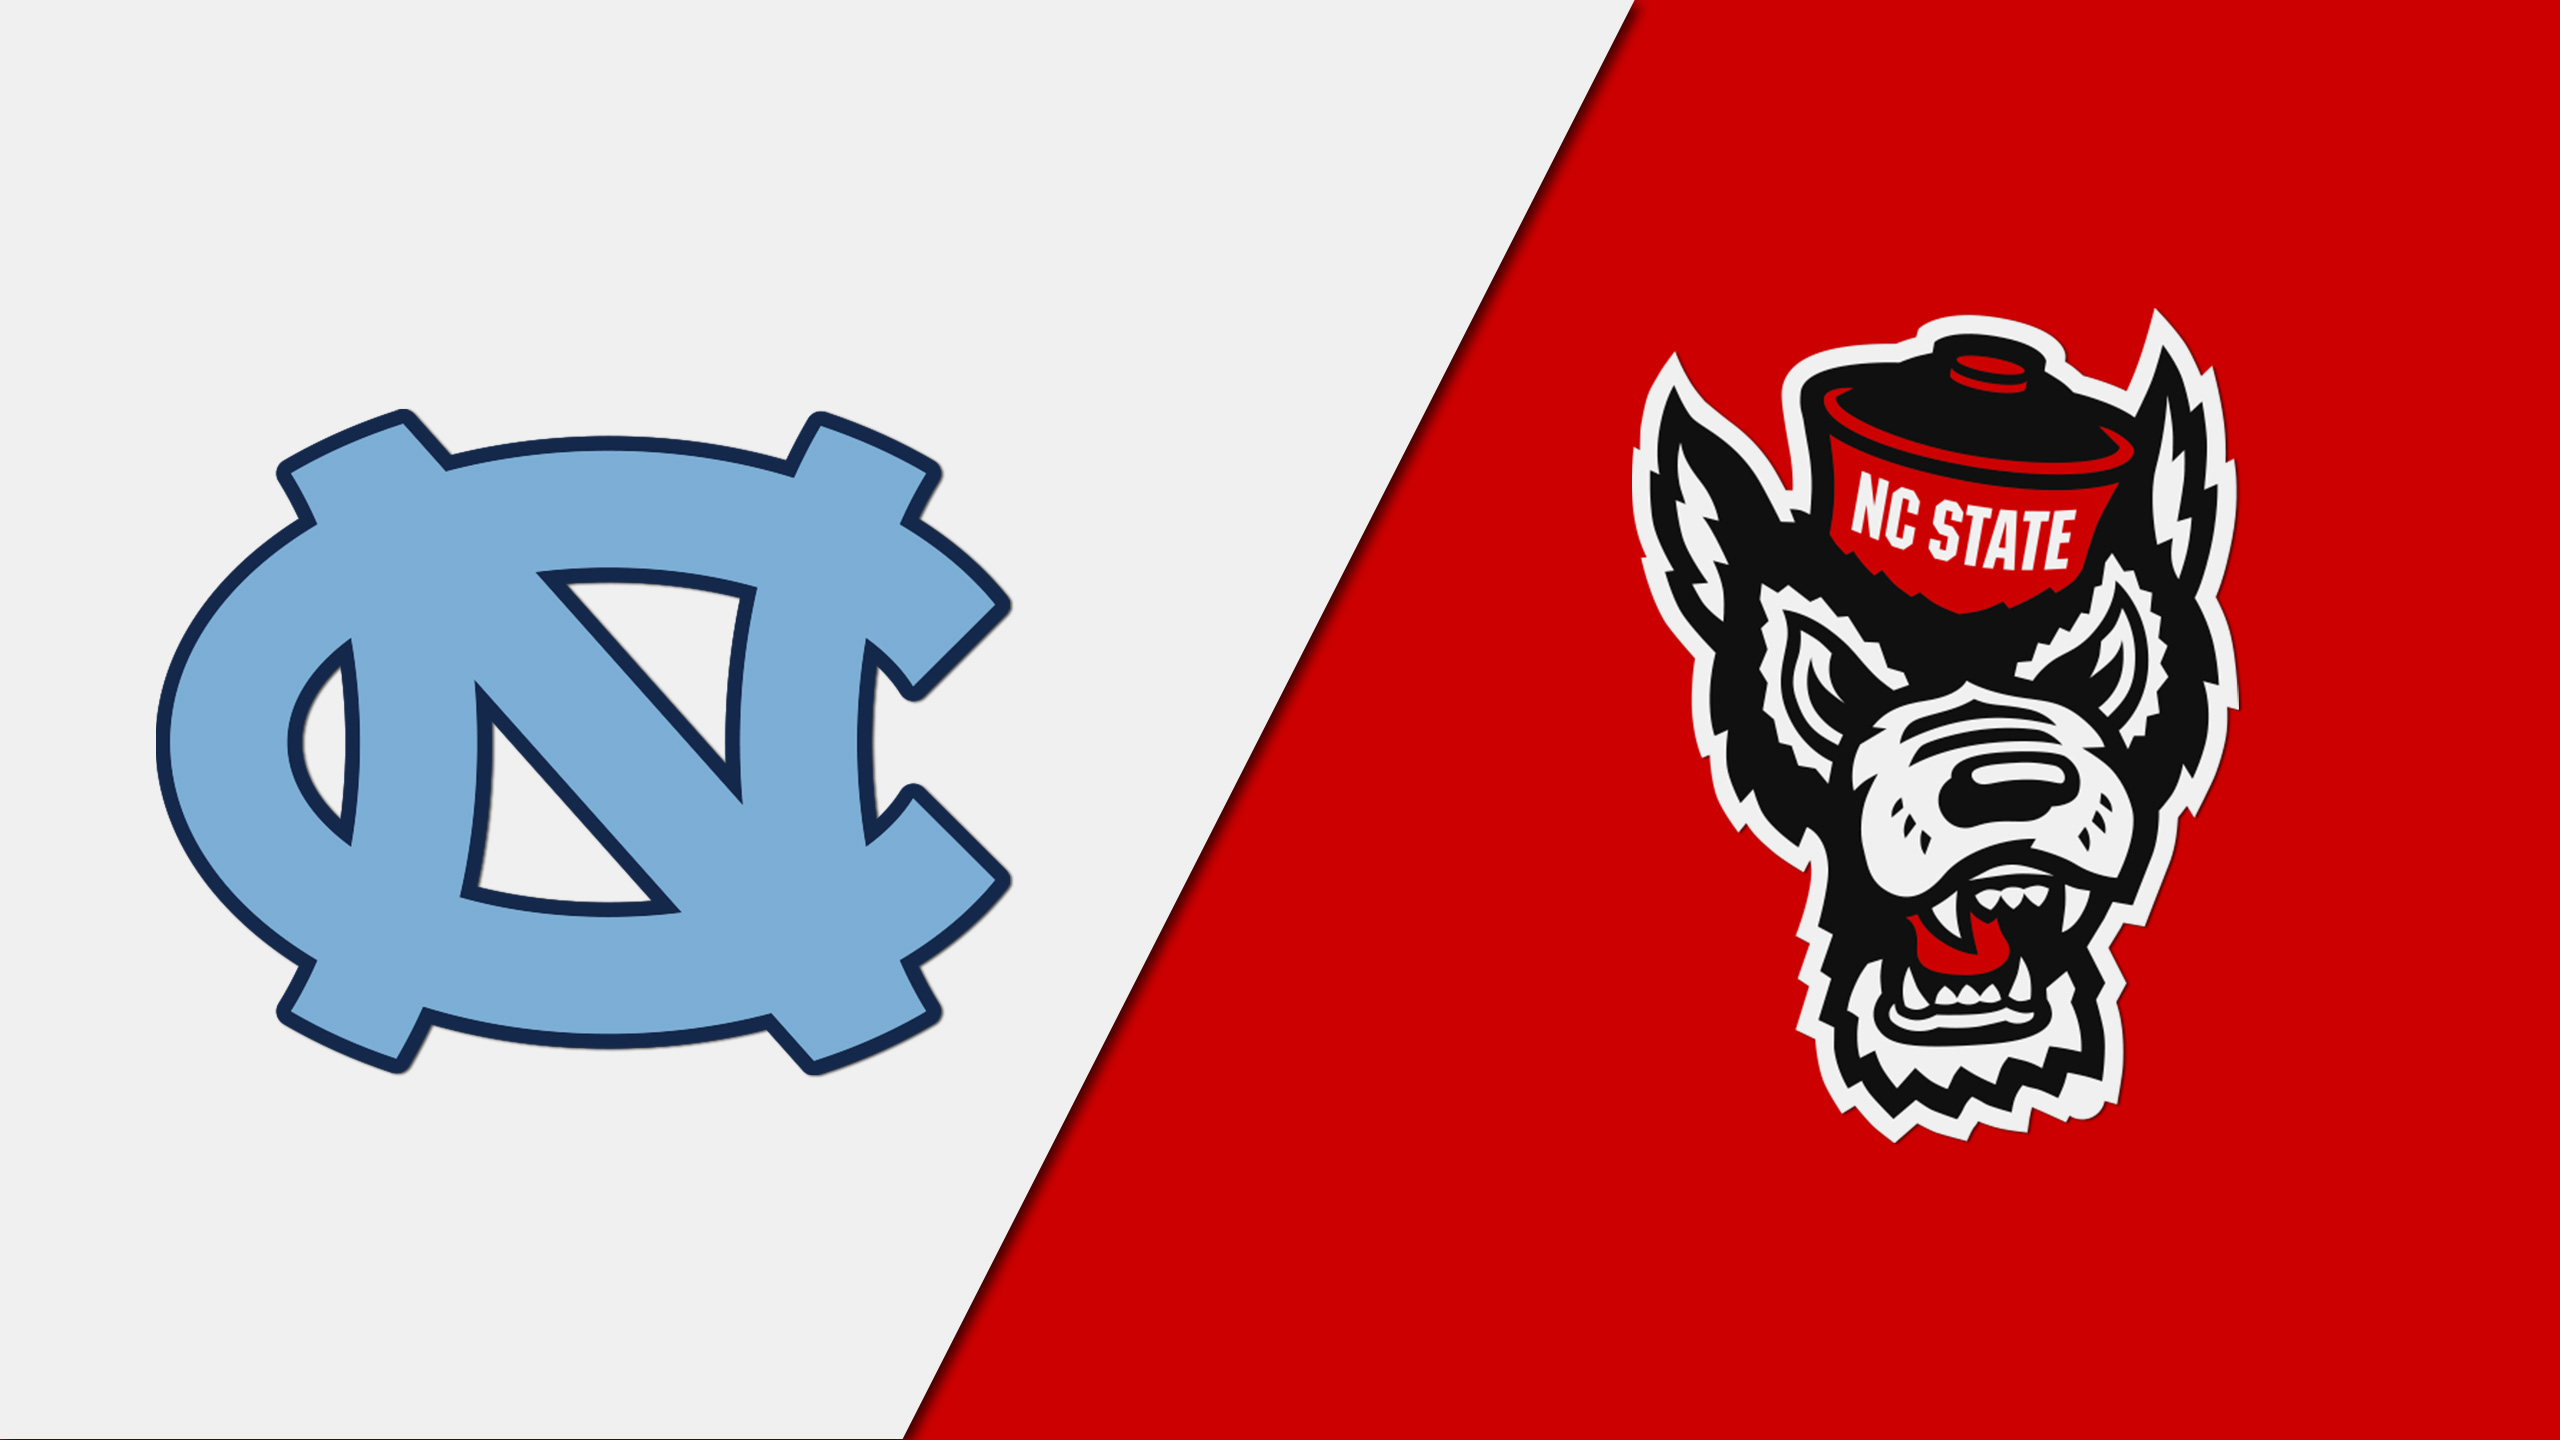 North Carolina vs. NC State (Swimming & Diving)